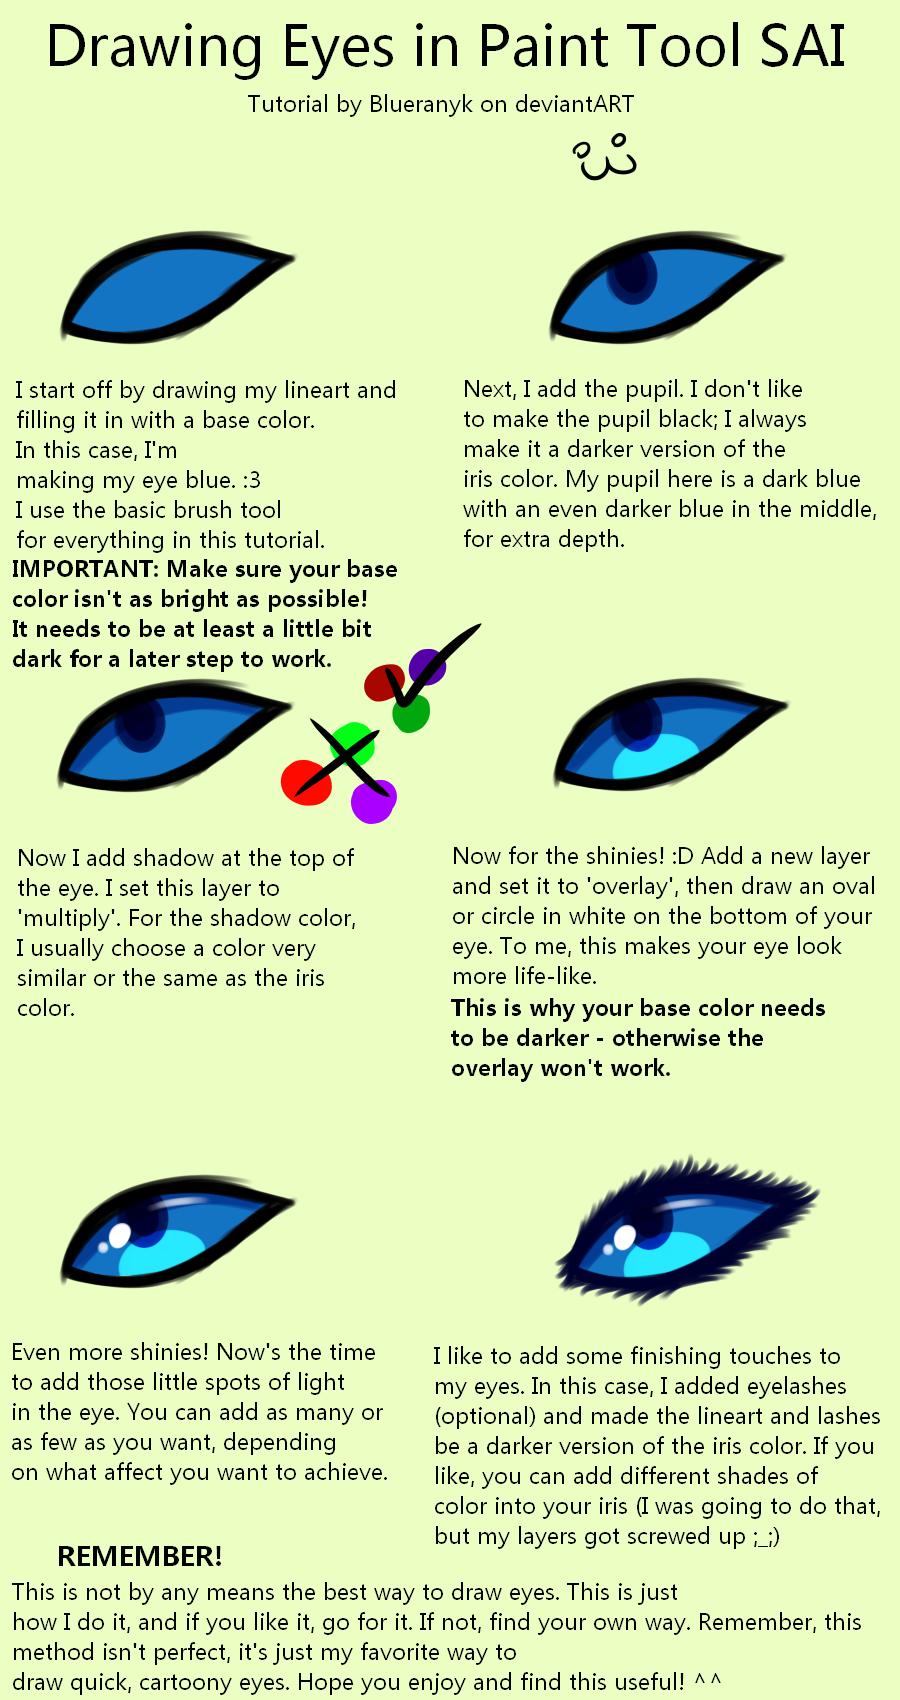 How to draw eyes in paint tool sai by blueranyk on deviantart how to draw eyes in paint tool sai by blueranyk ccuart Images